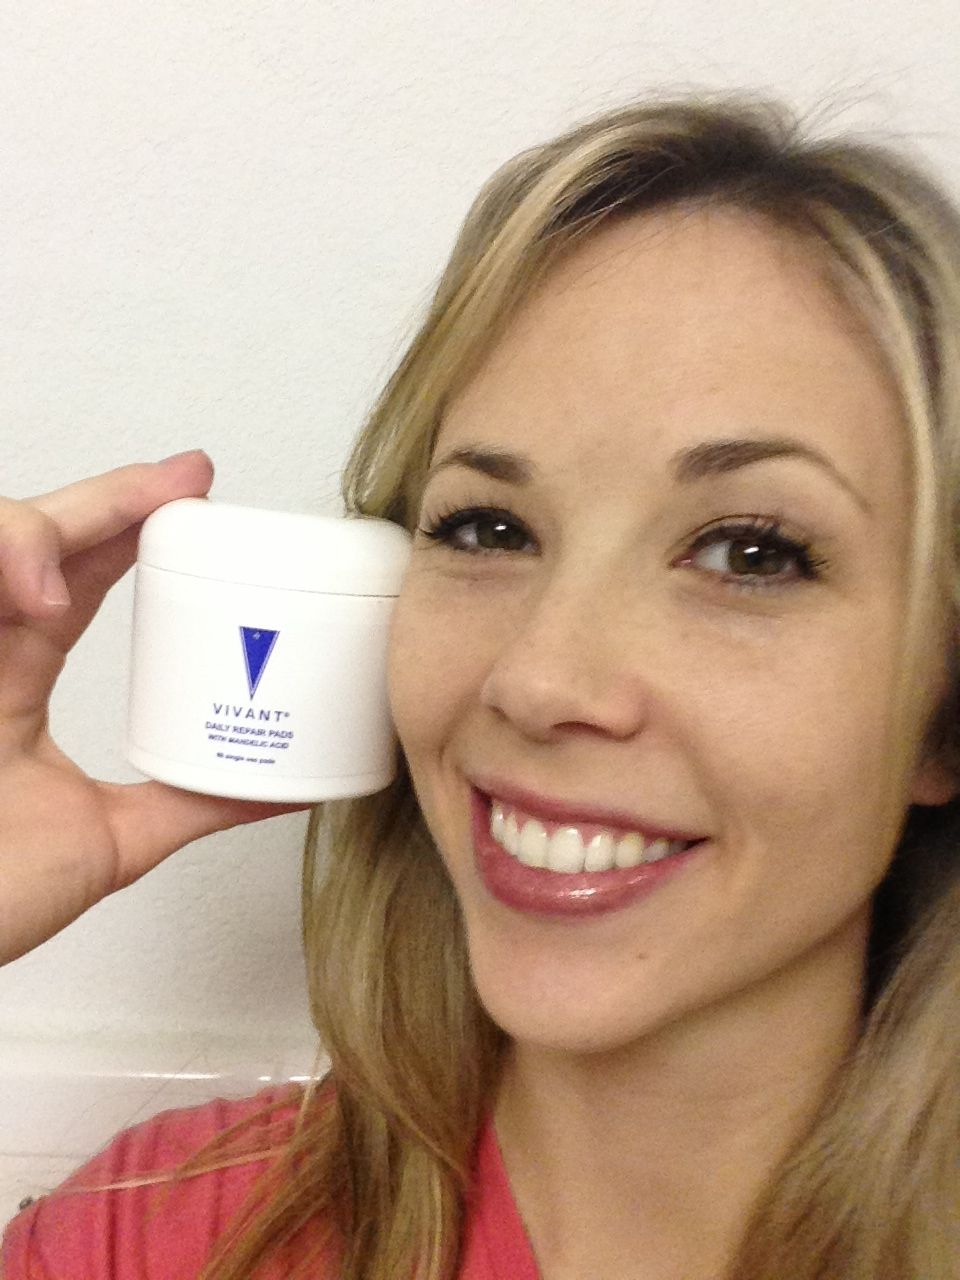 Vivant Daily Repair Pads The Best for clear skin